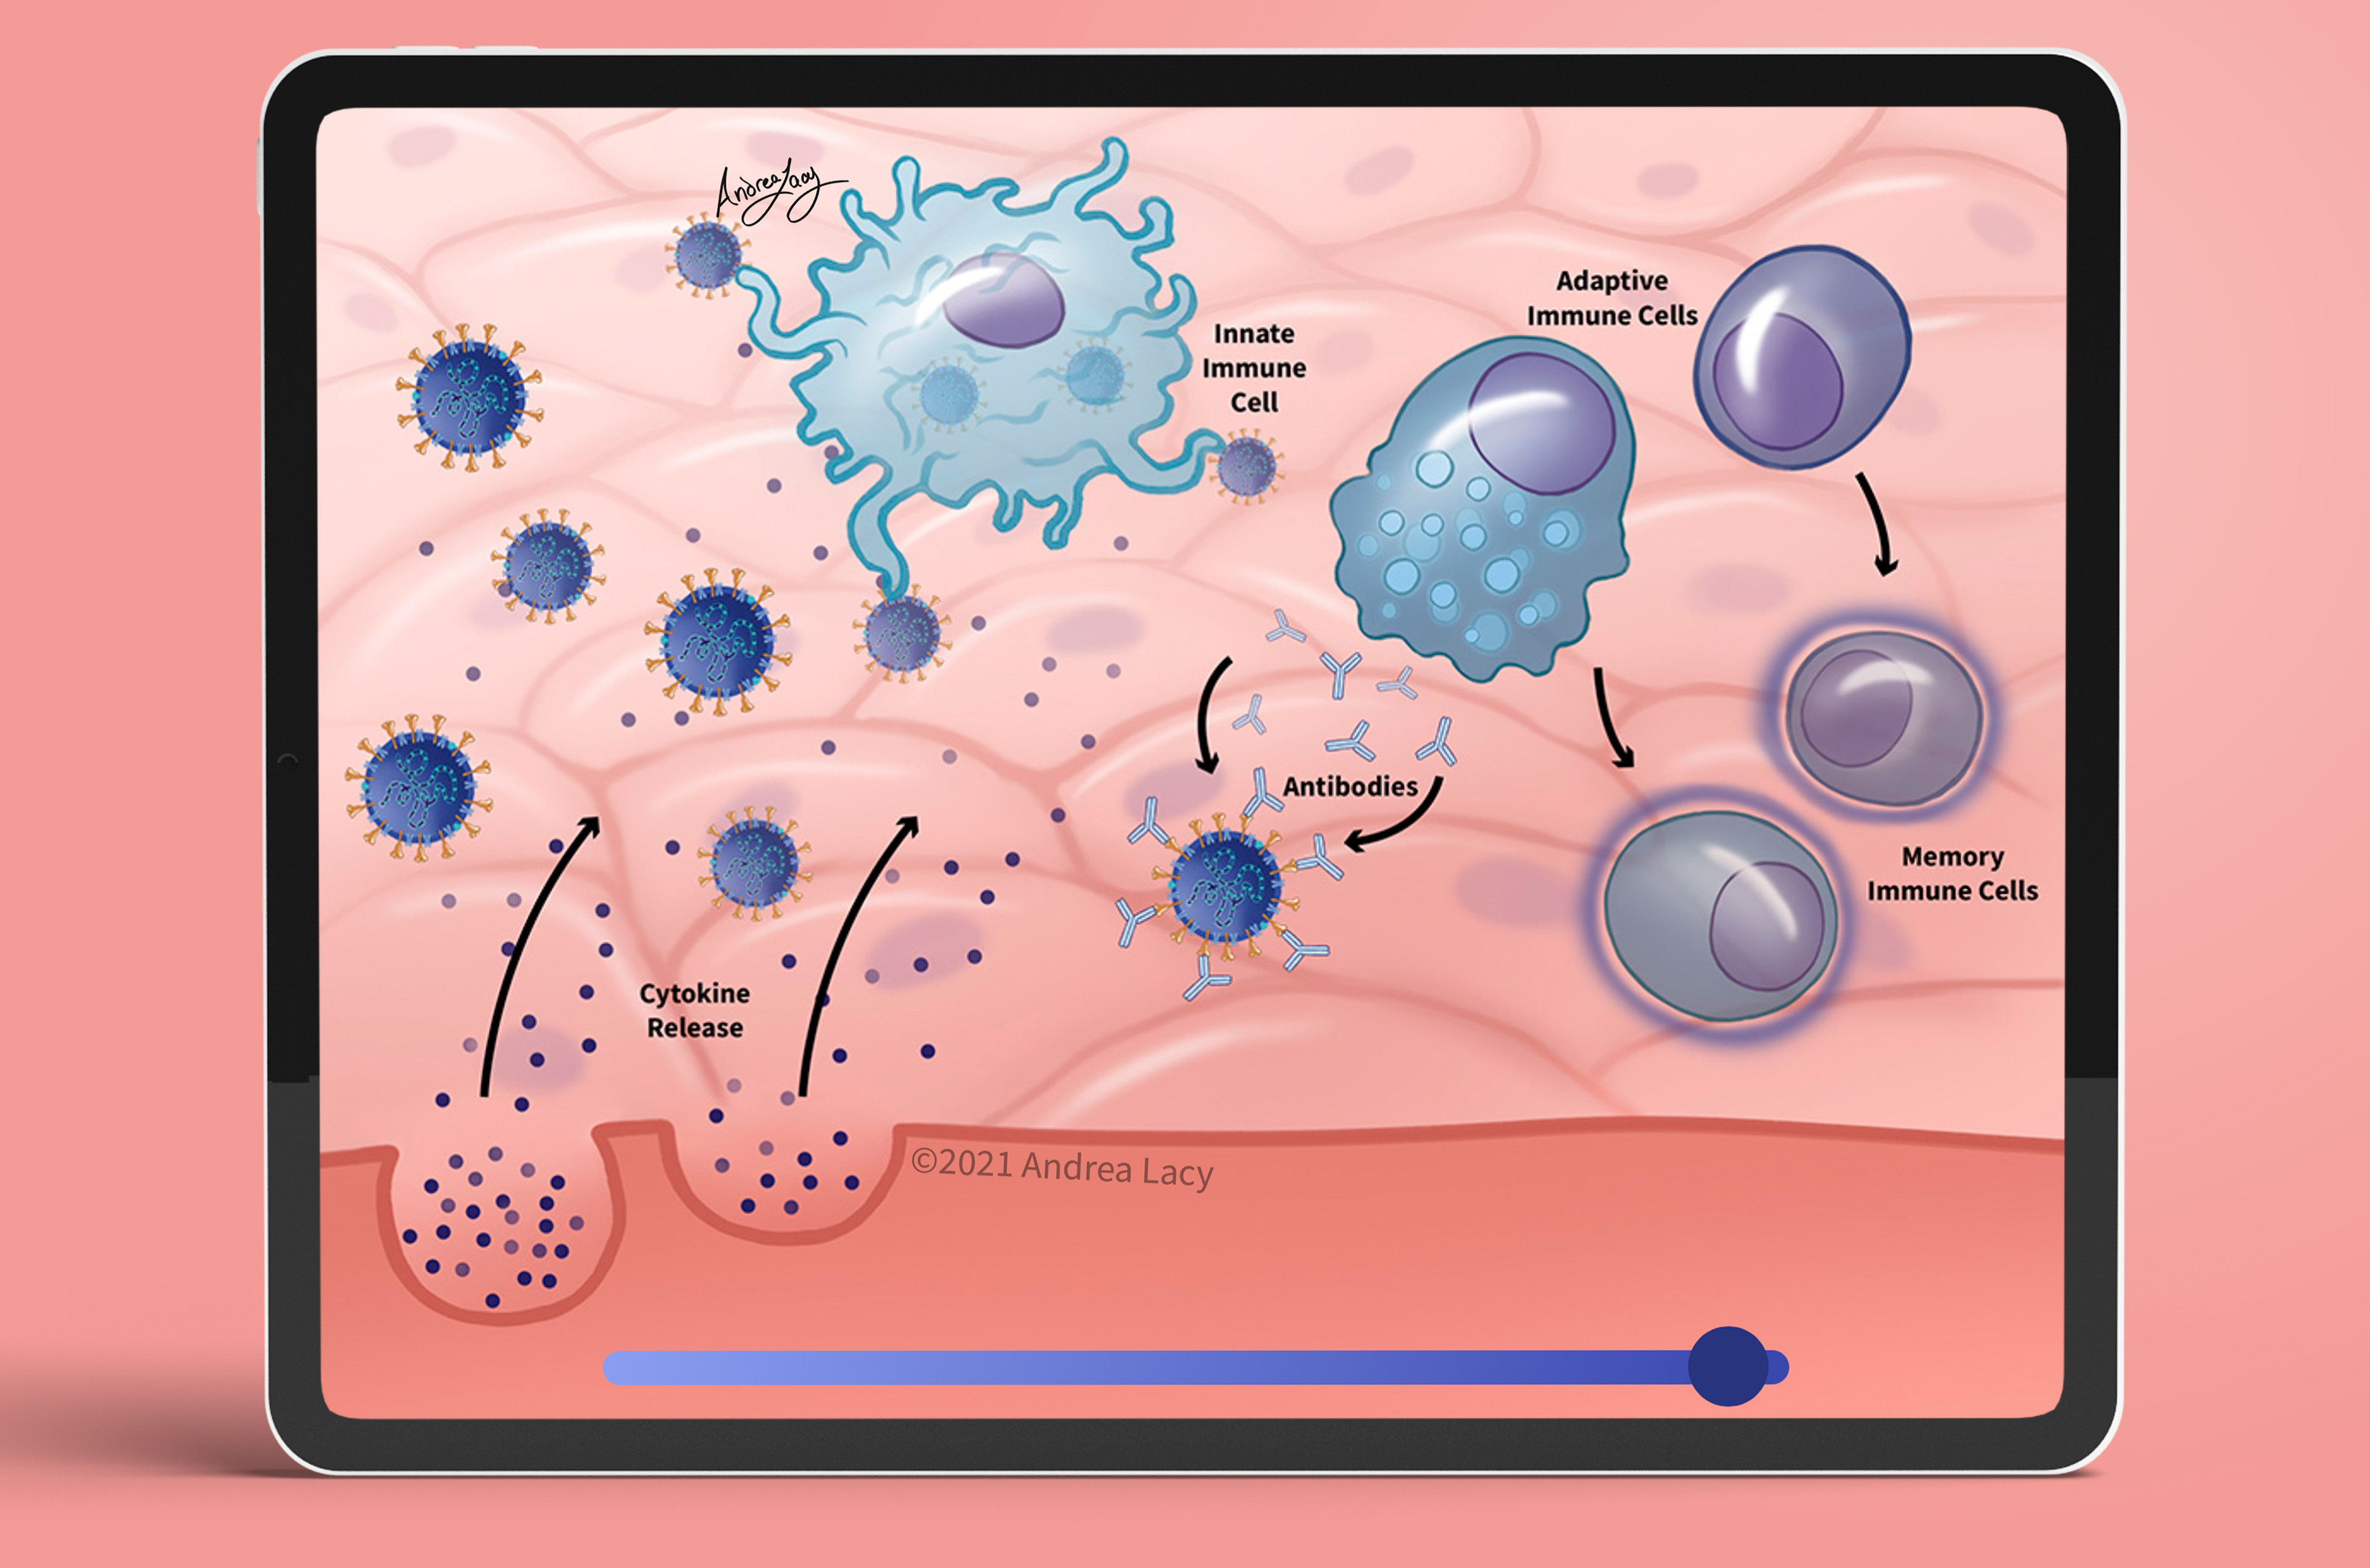 Interactive 2 illustrates how the immune system responds to SARS-CoV-2 infection.